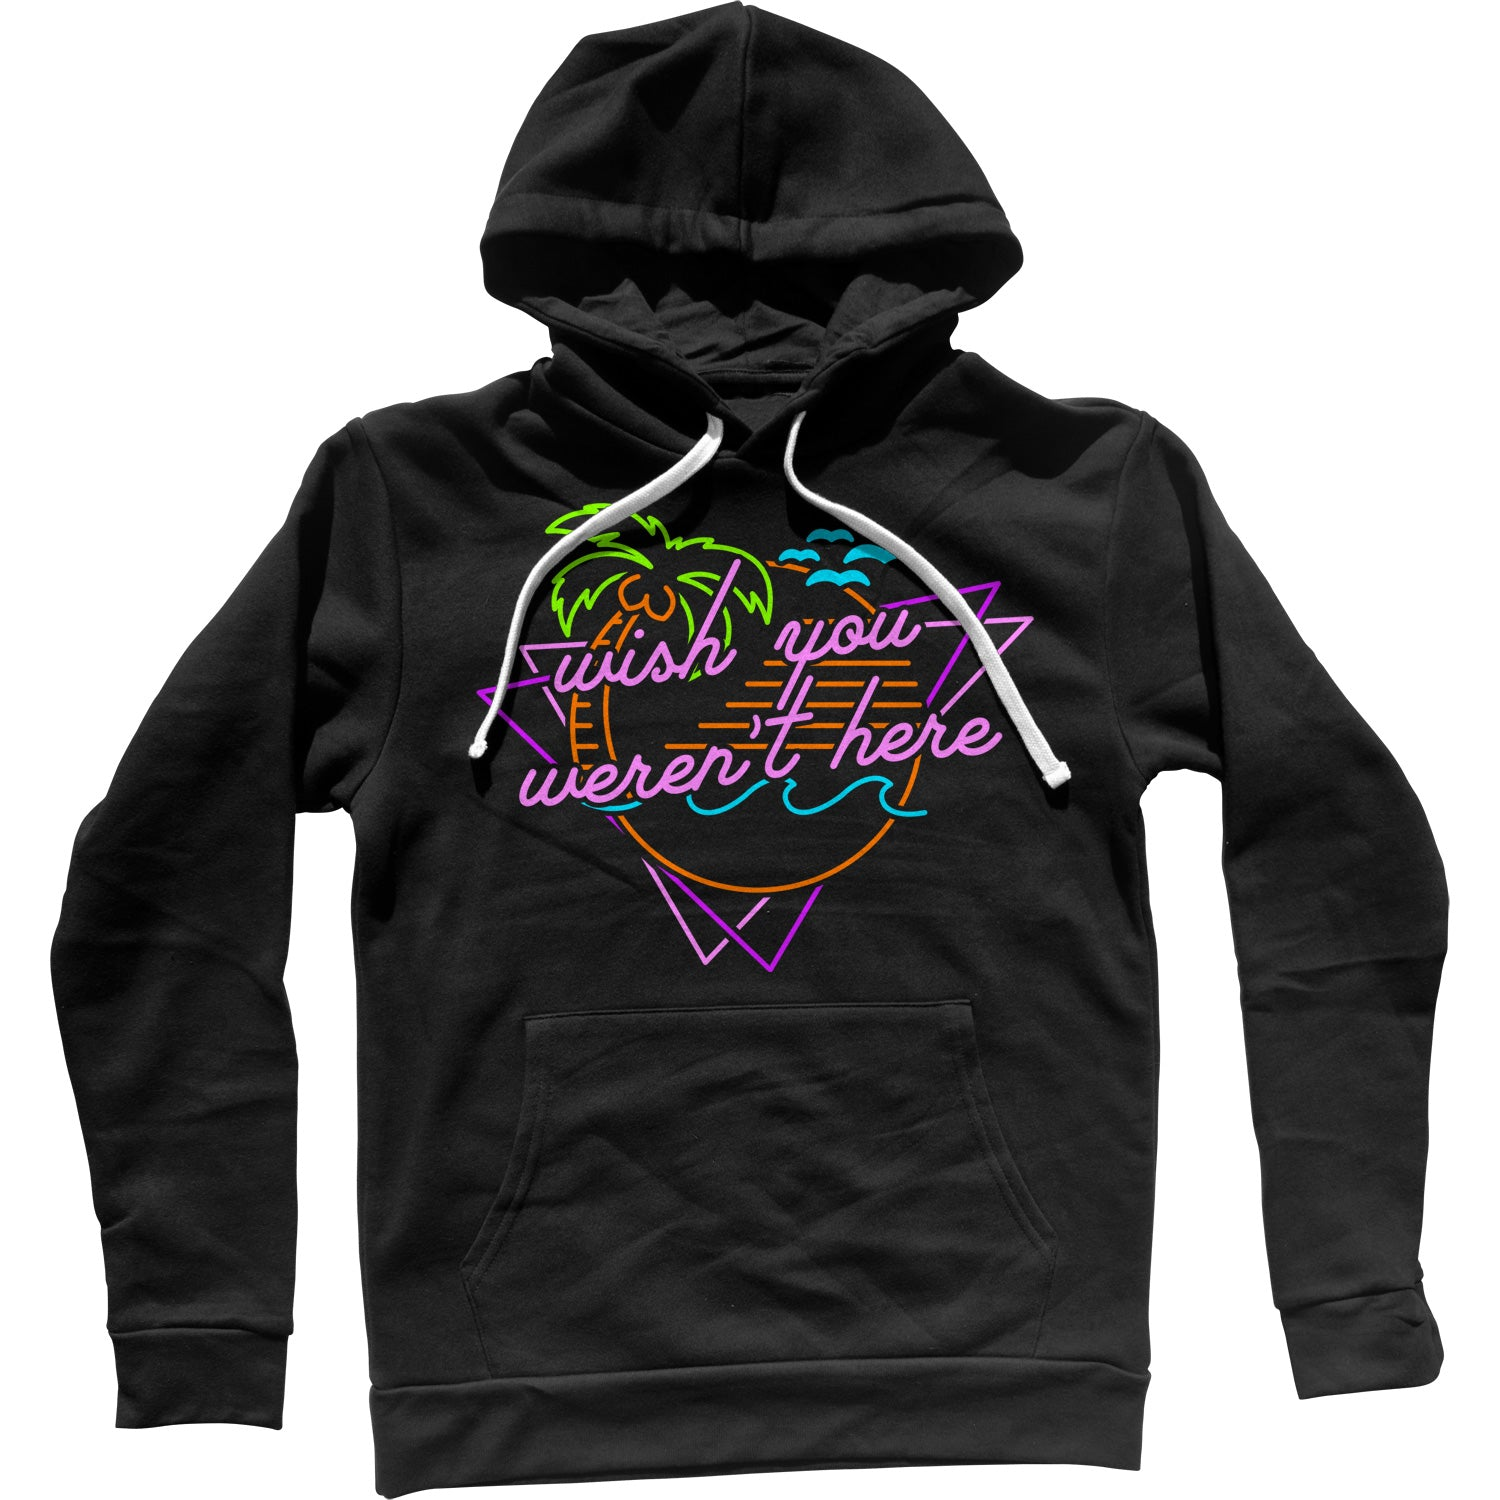 Wish You Weren't Here Unisex Hoodie